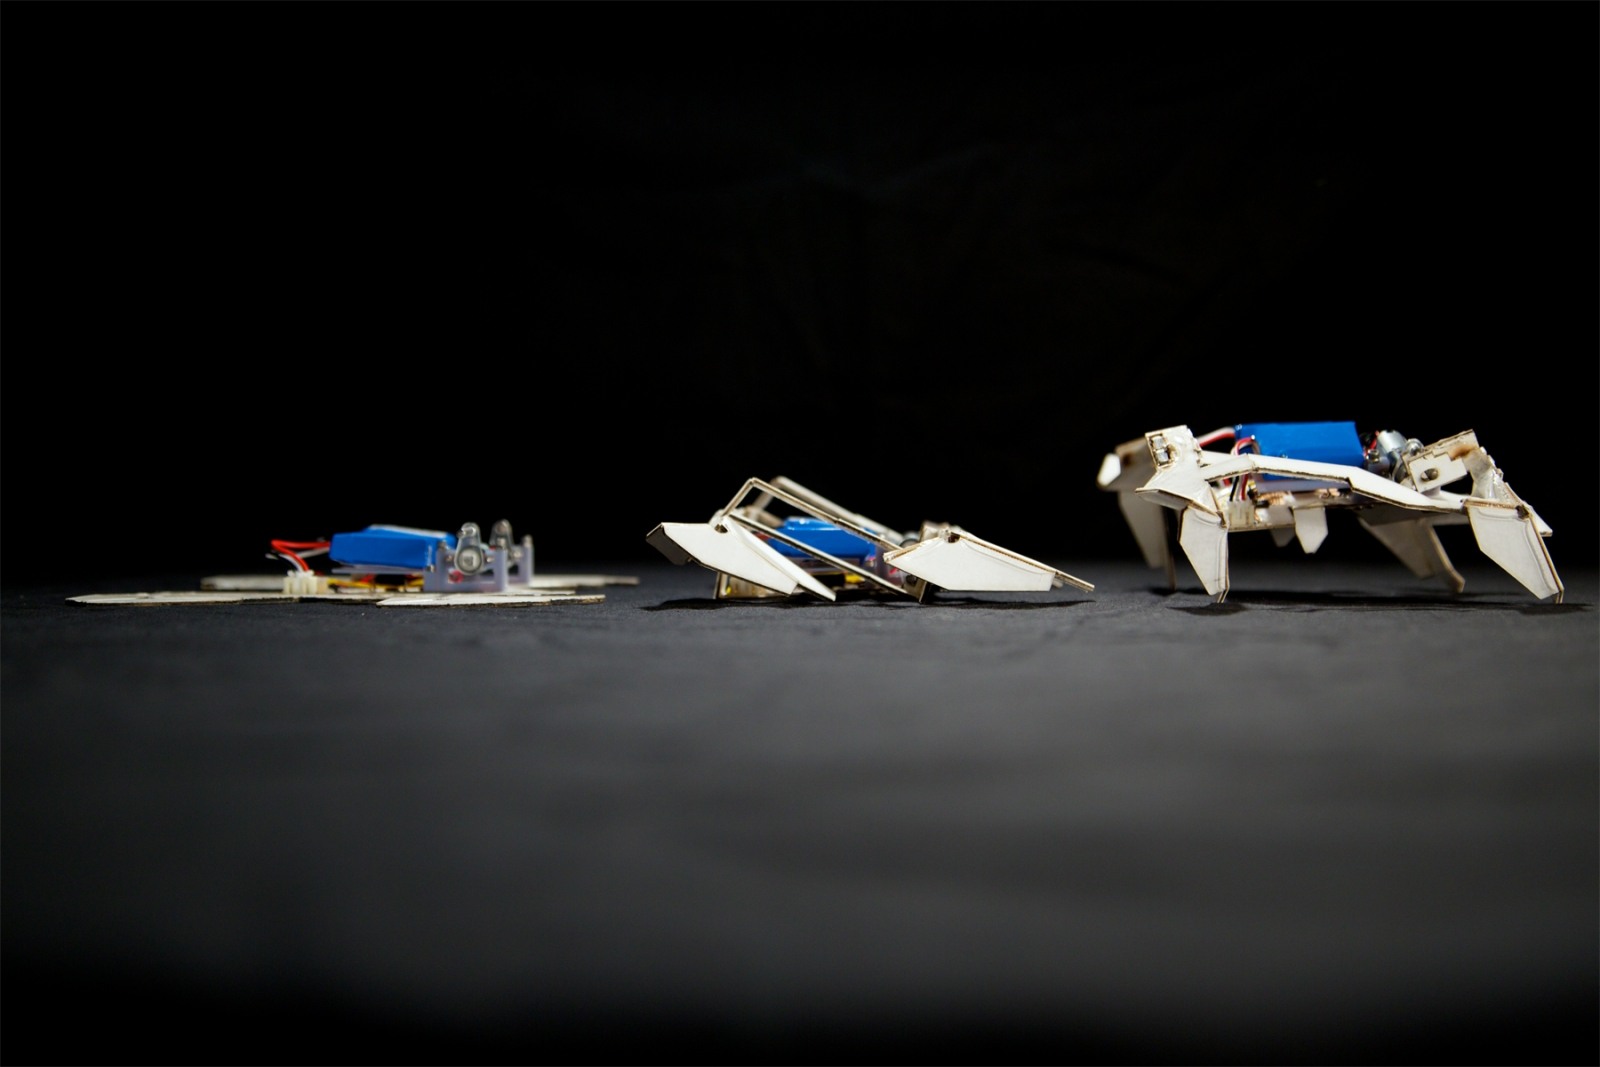 Origami robots designed by MIT and Harvard are able to fold up by themselves and crawl away